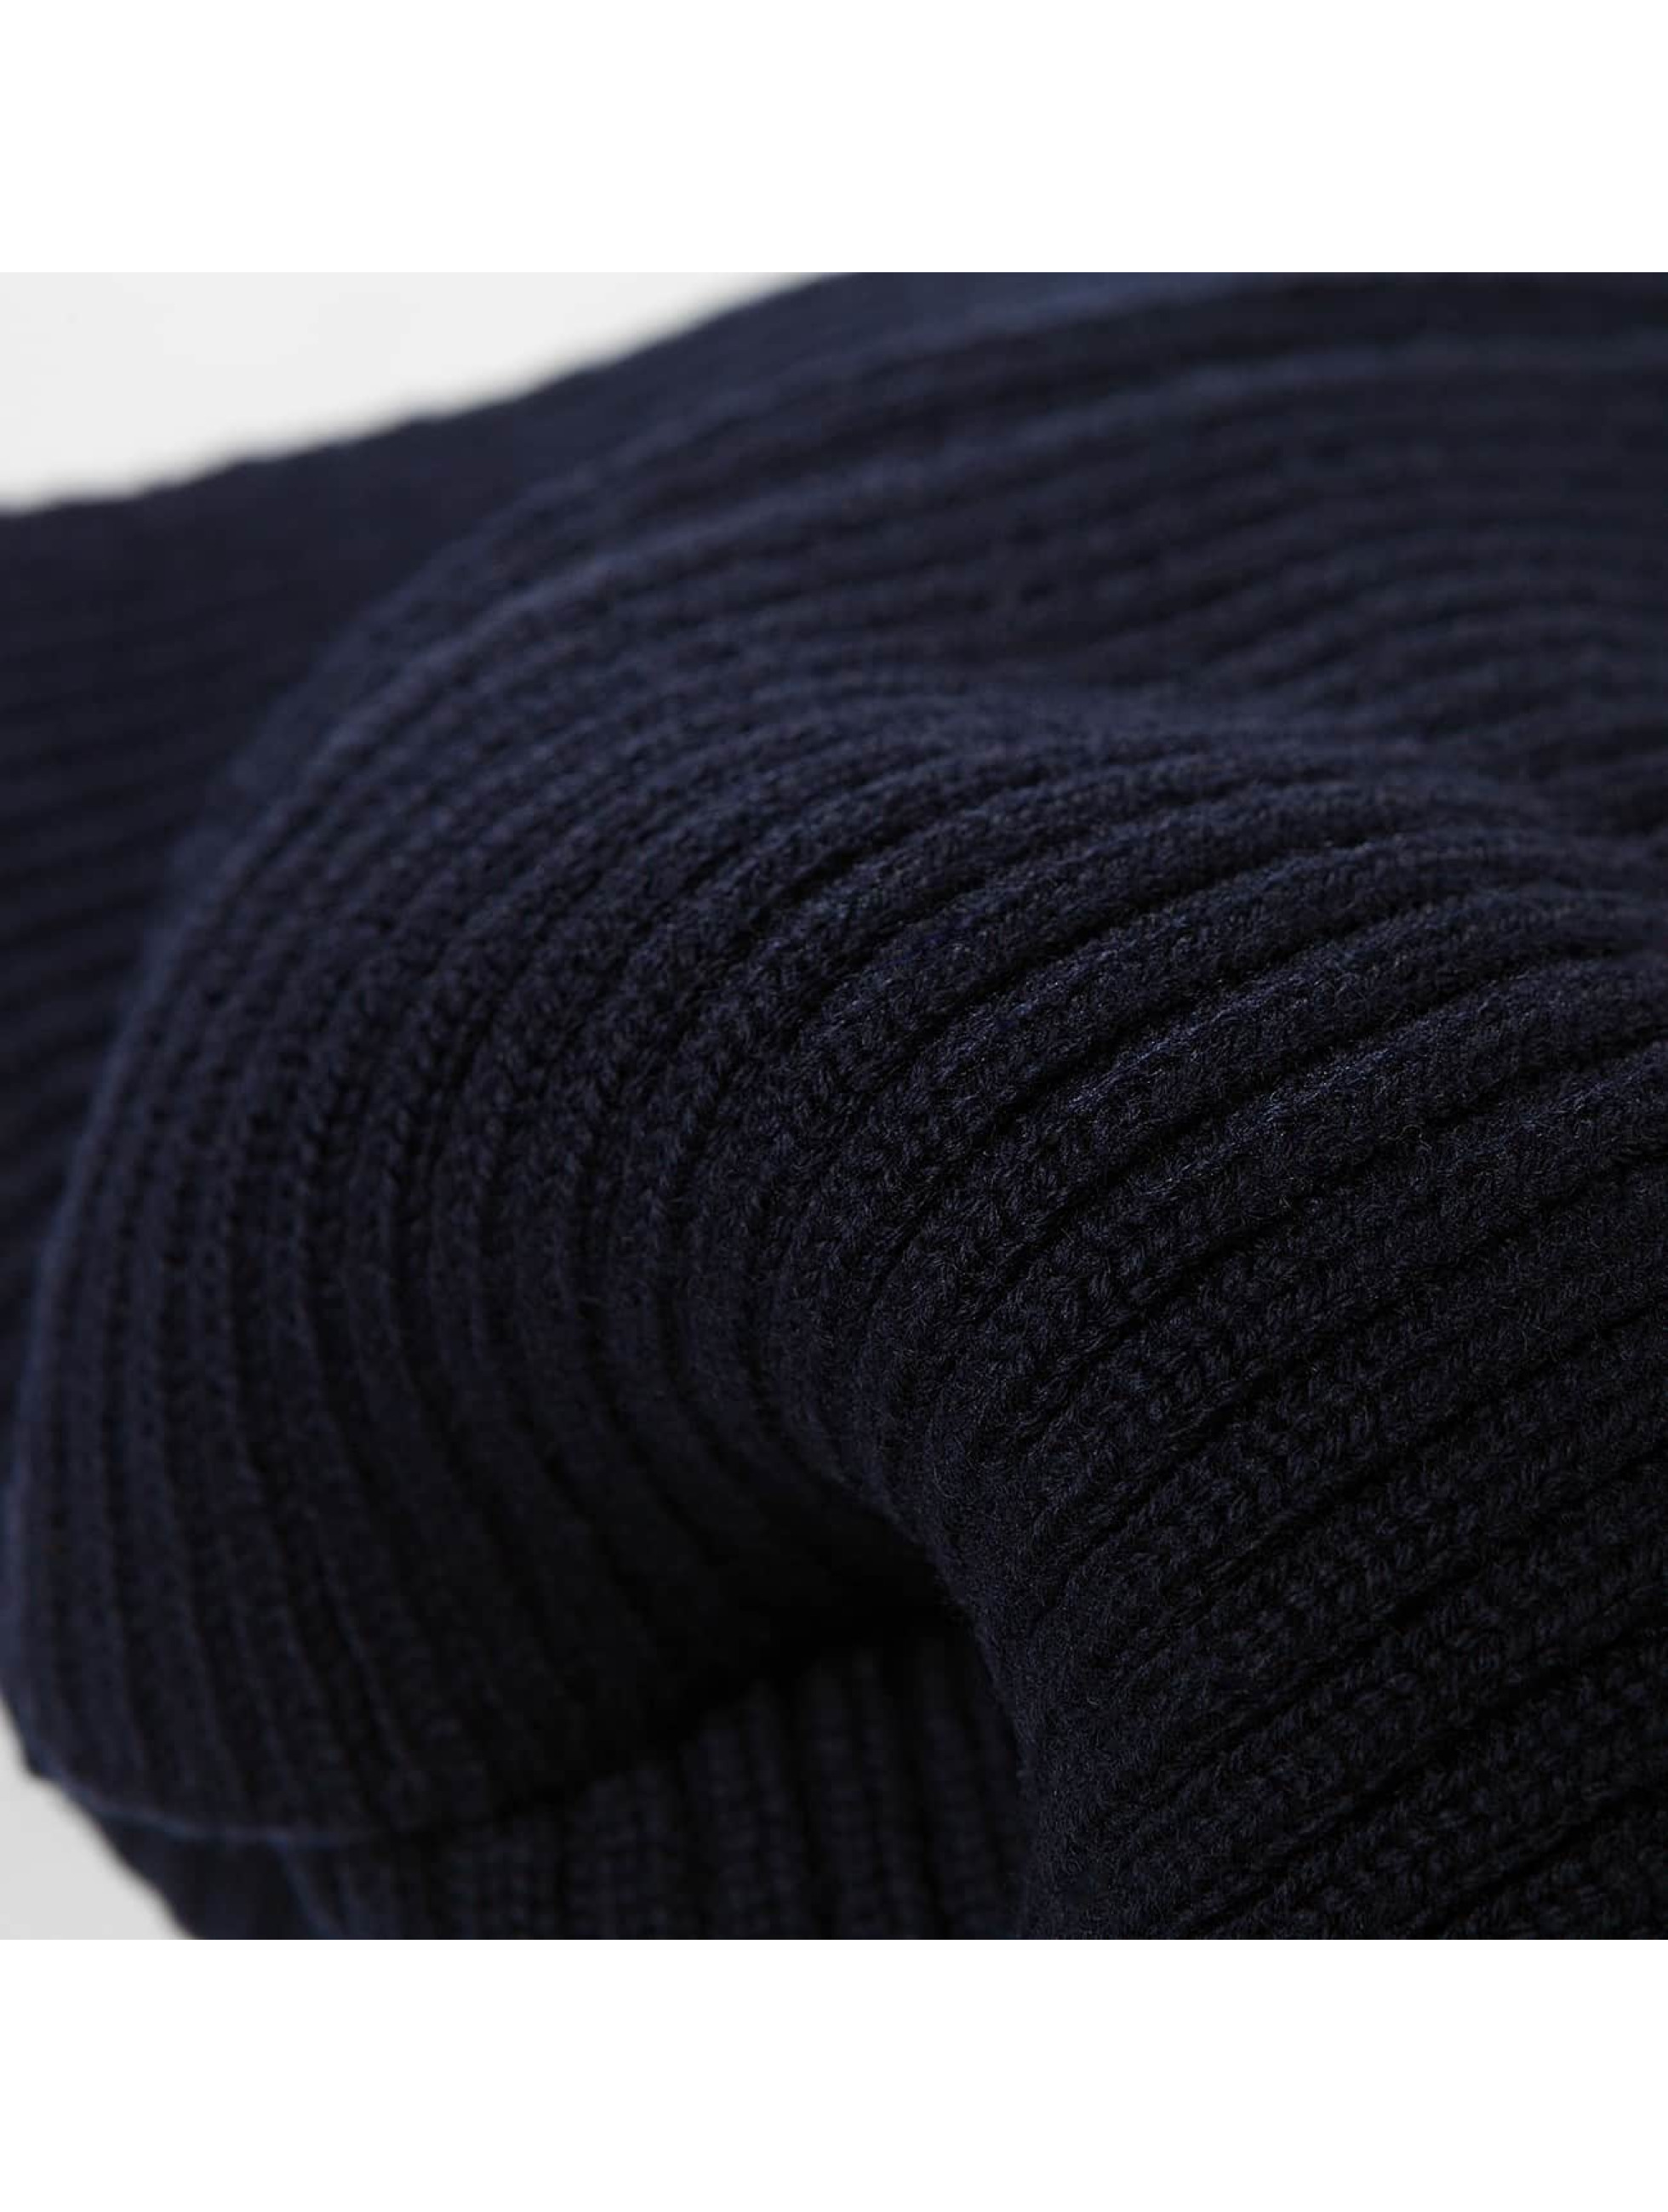 Lacoste Classic Chal / pañuelo Knitted azul